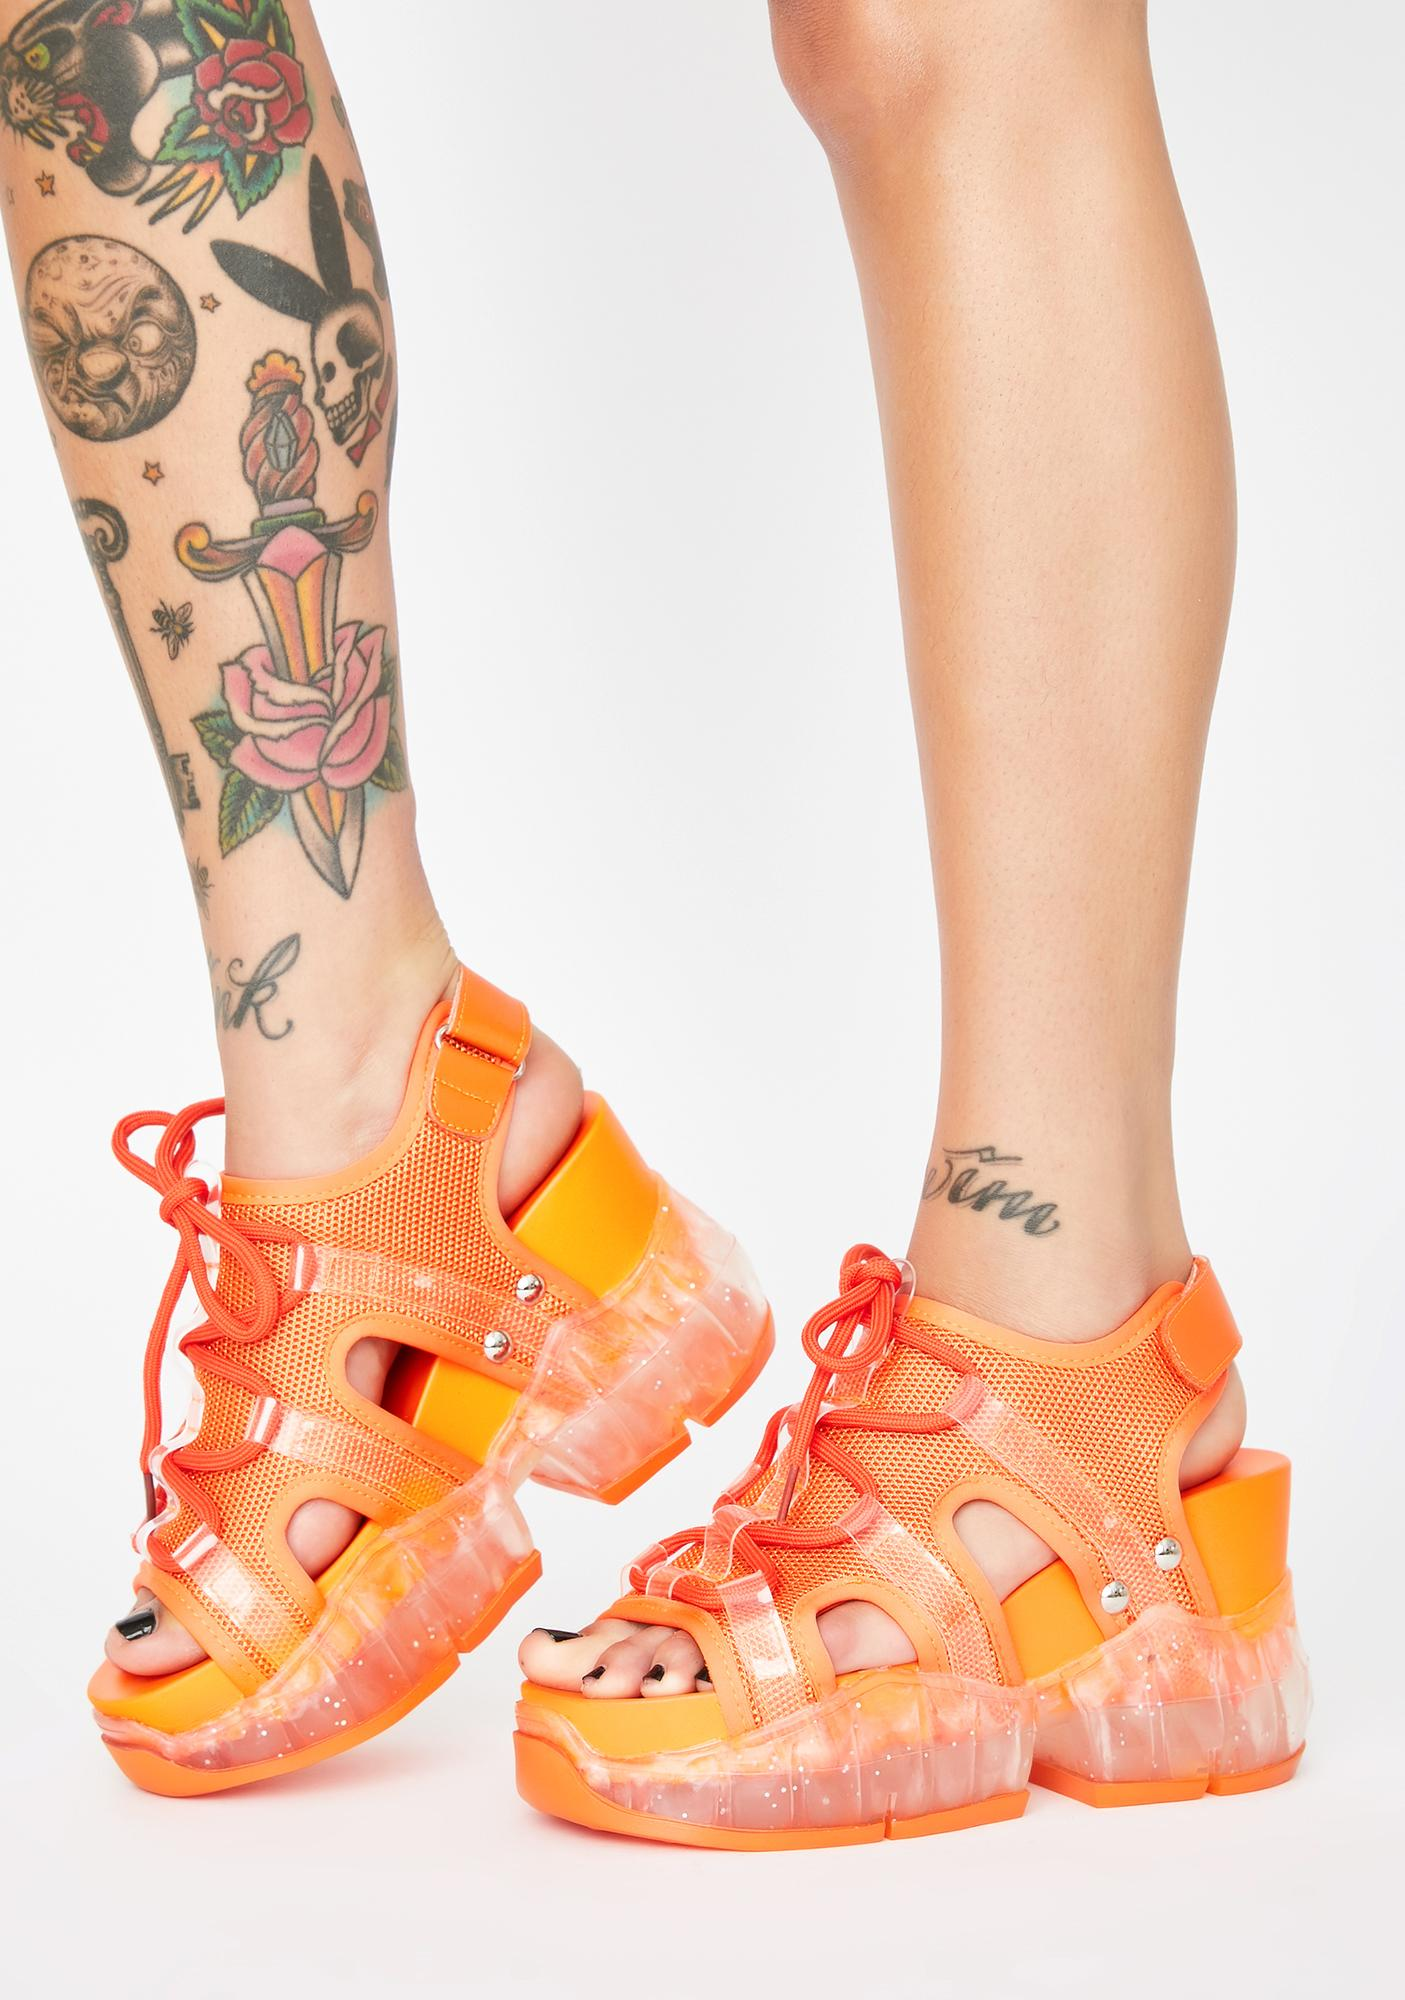 Anthony Wang Juicy Xtreme Elements Chunky Sandals